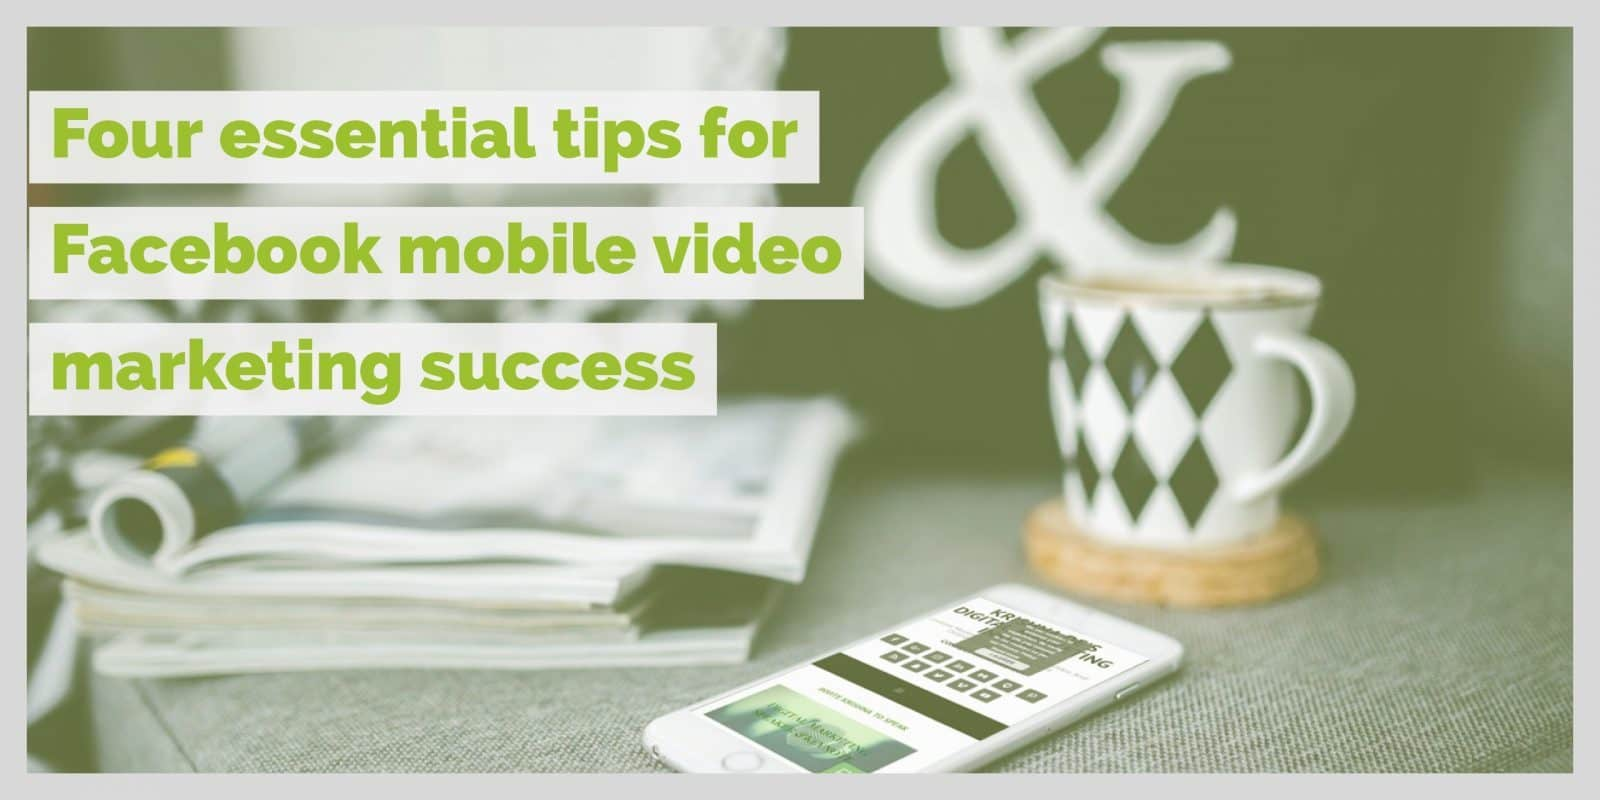 Facebook video marketing success four tips for mobile video content creation